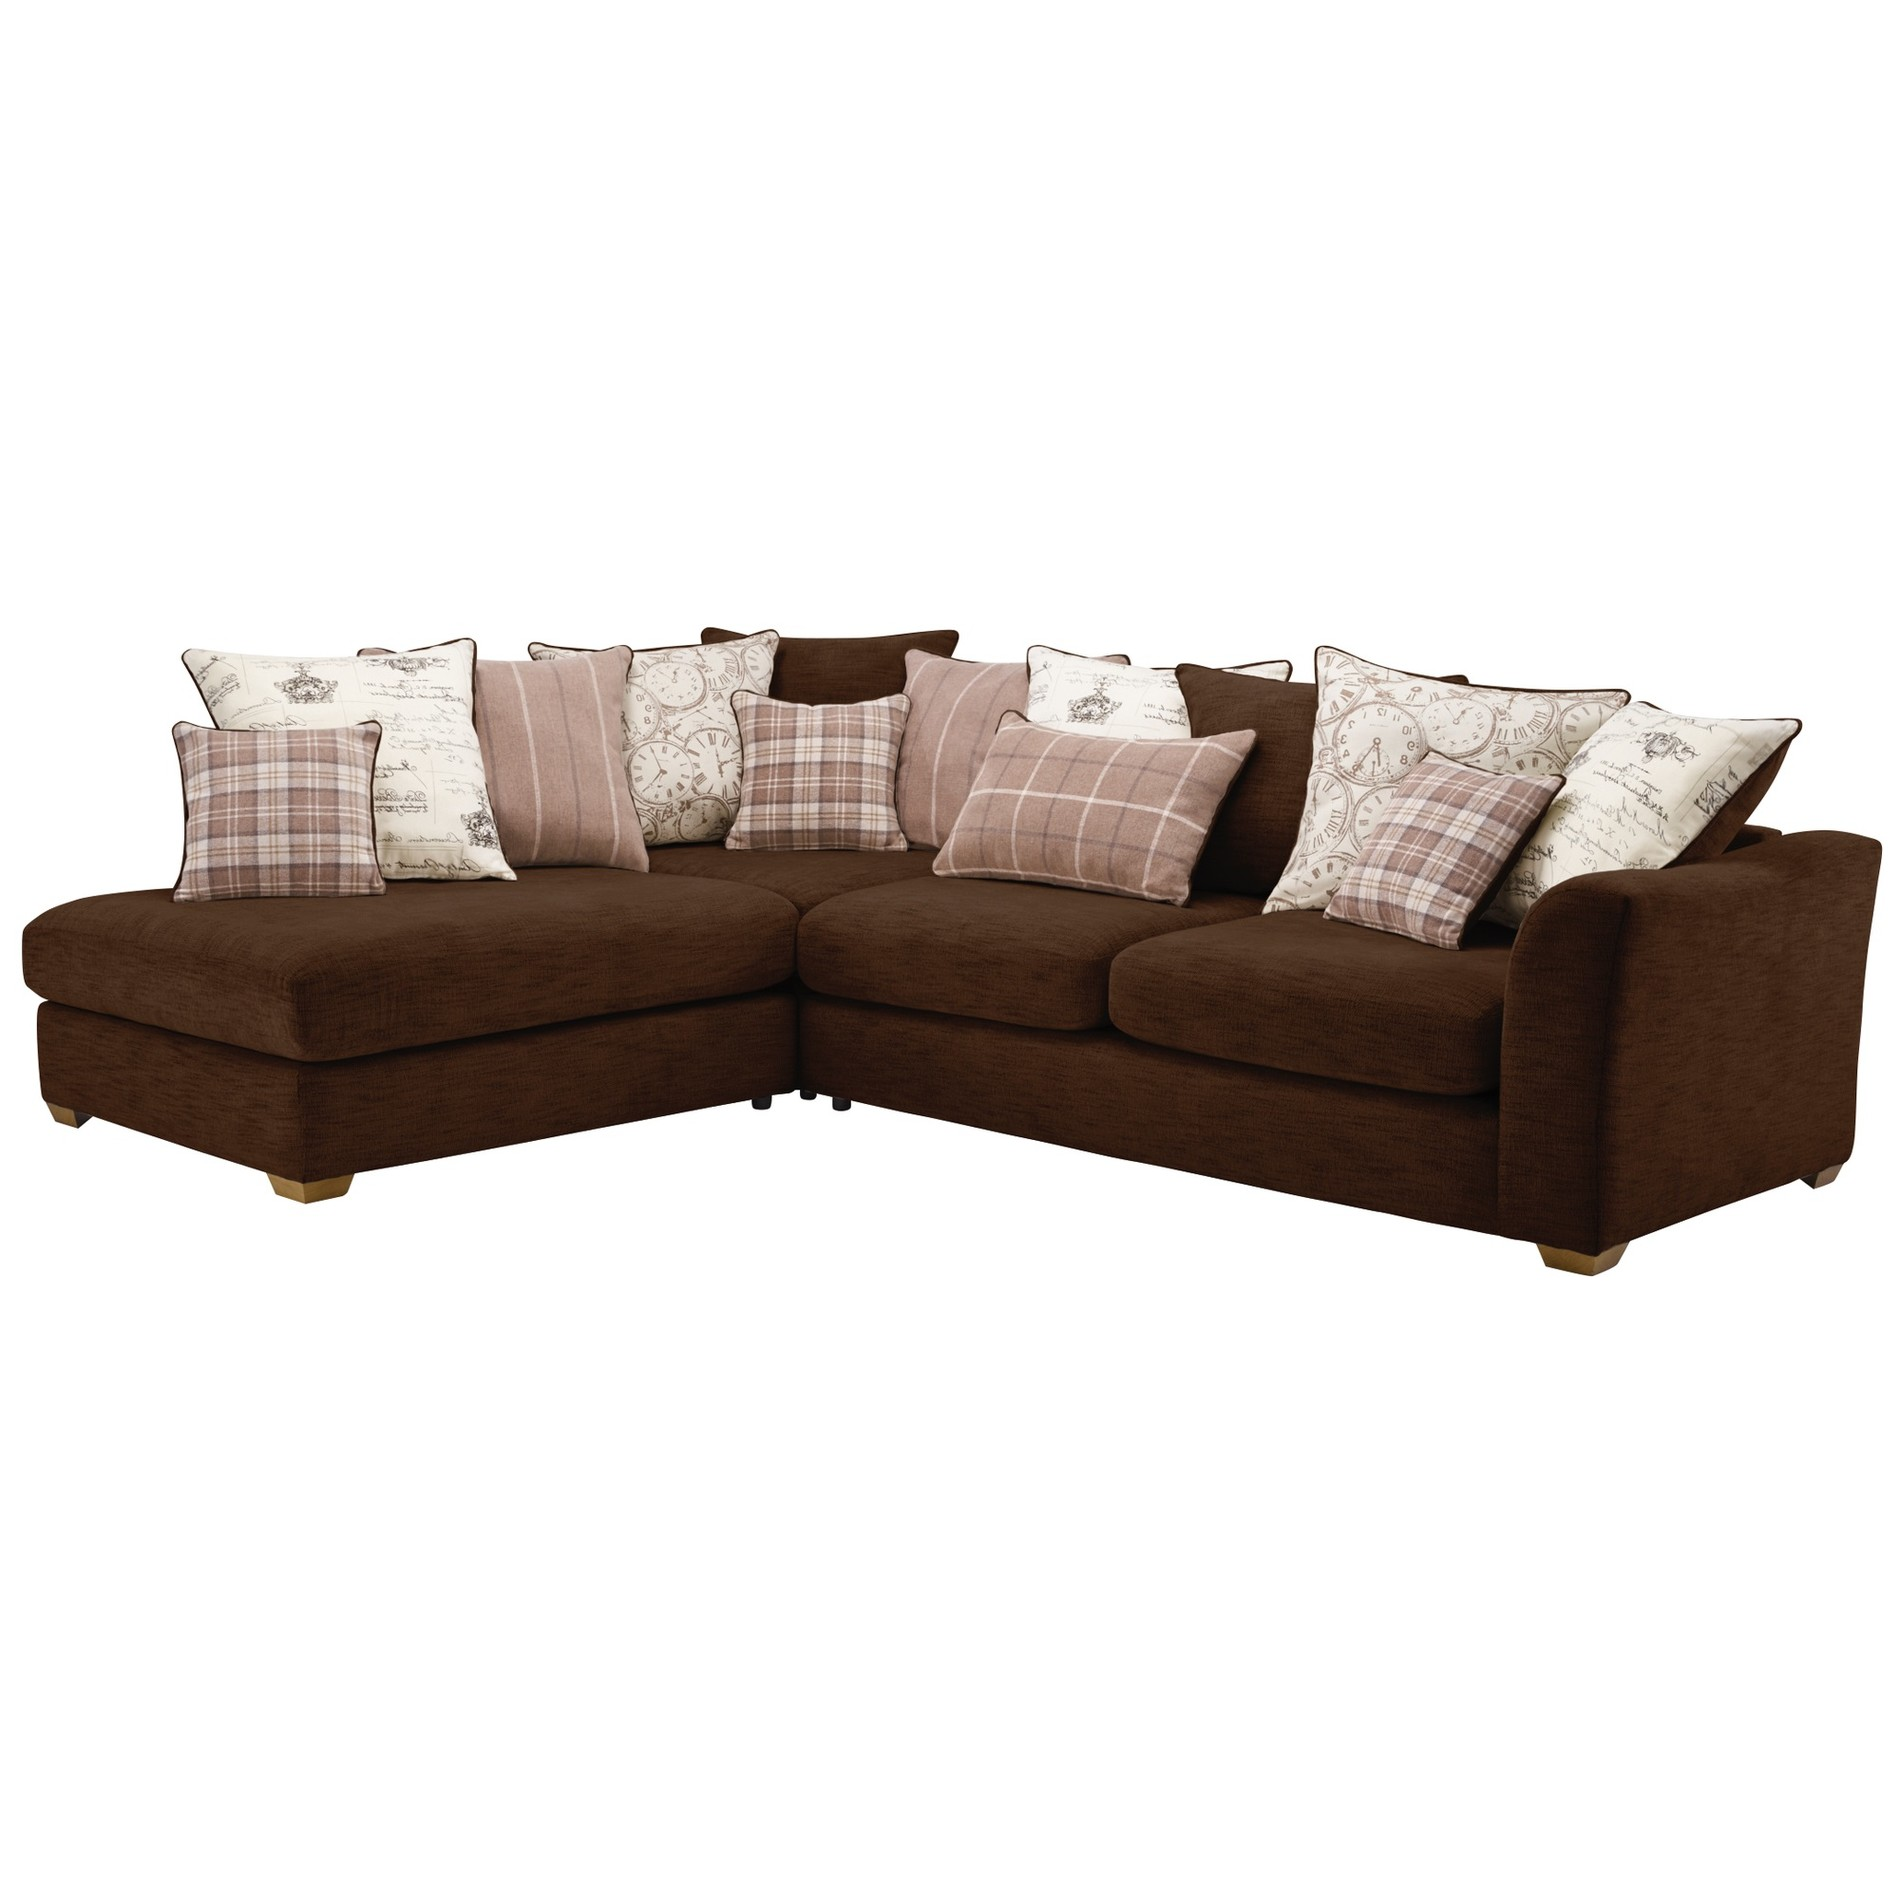 Florence Right Hand Corner Sofa with Pillow Back in Chocolate